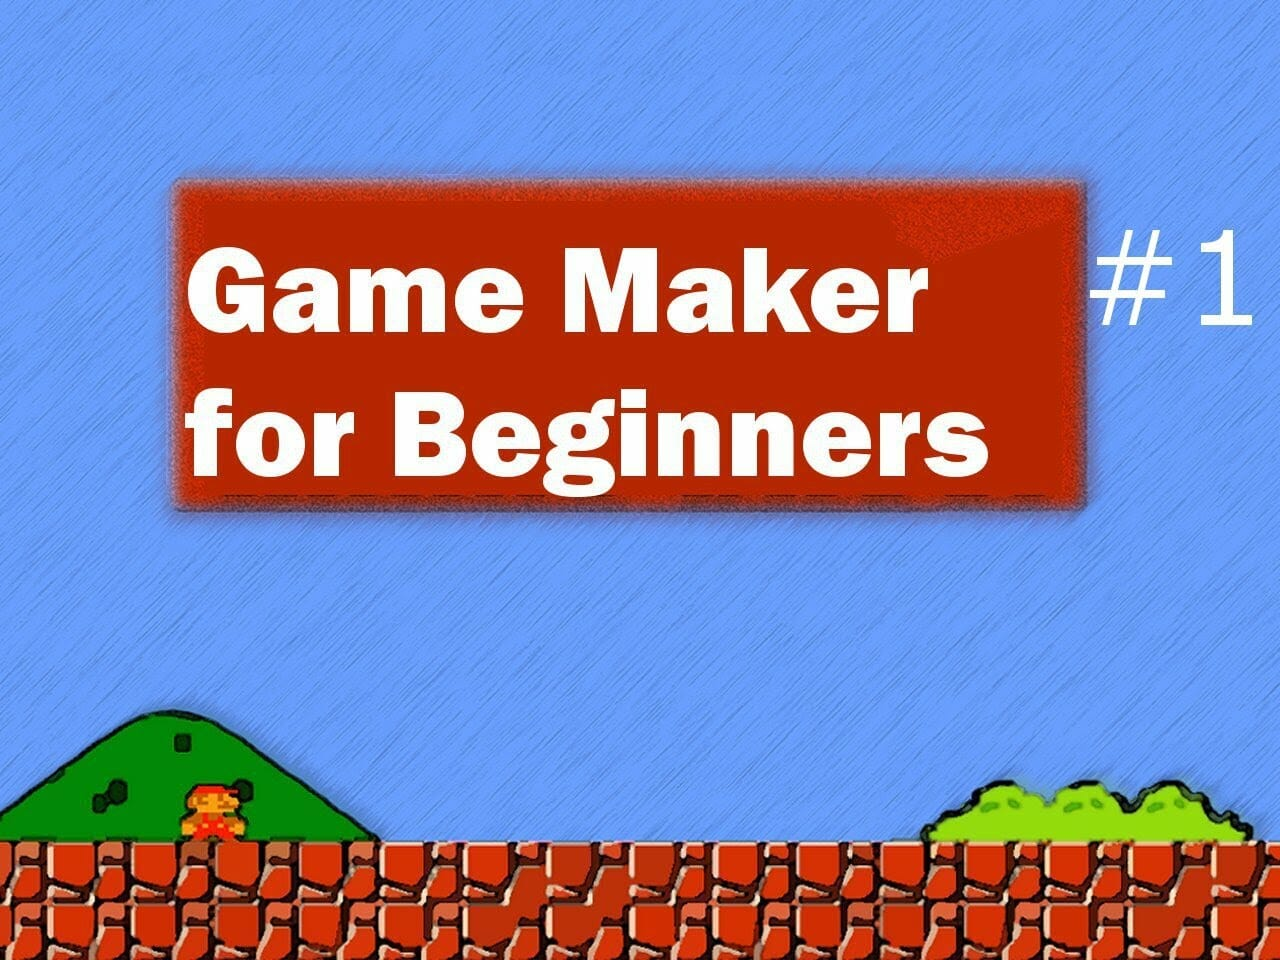 Game Maker for Beginners